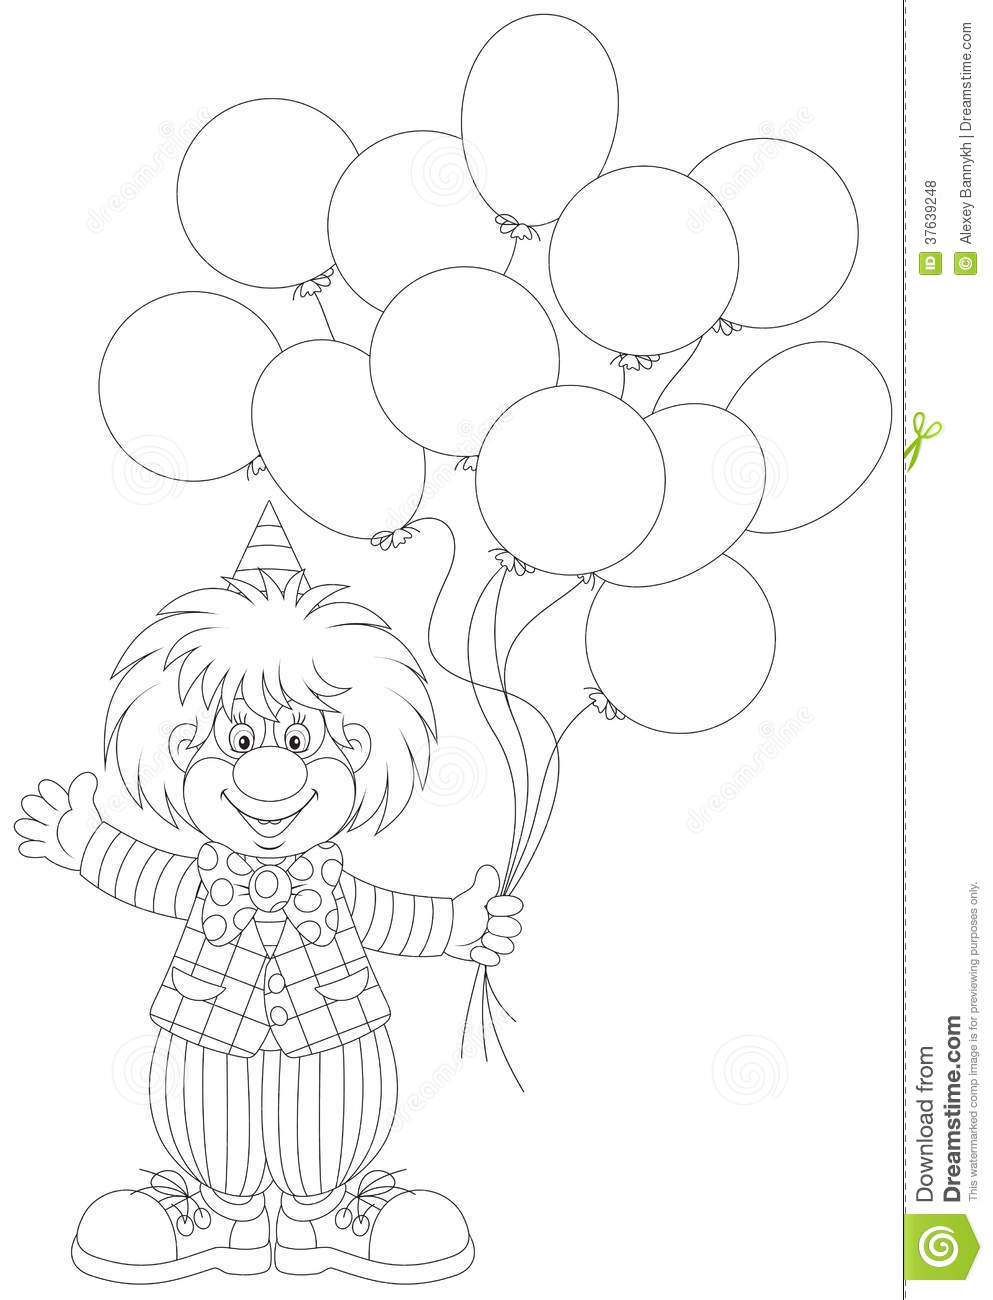 Clown Holding Balloons Coloring Page. clown coloring pages ...